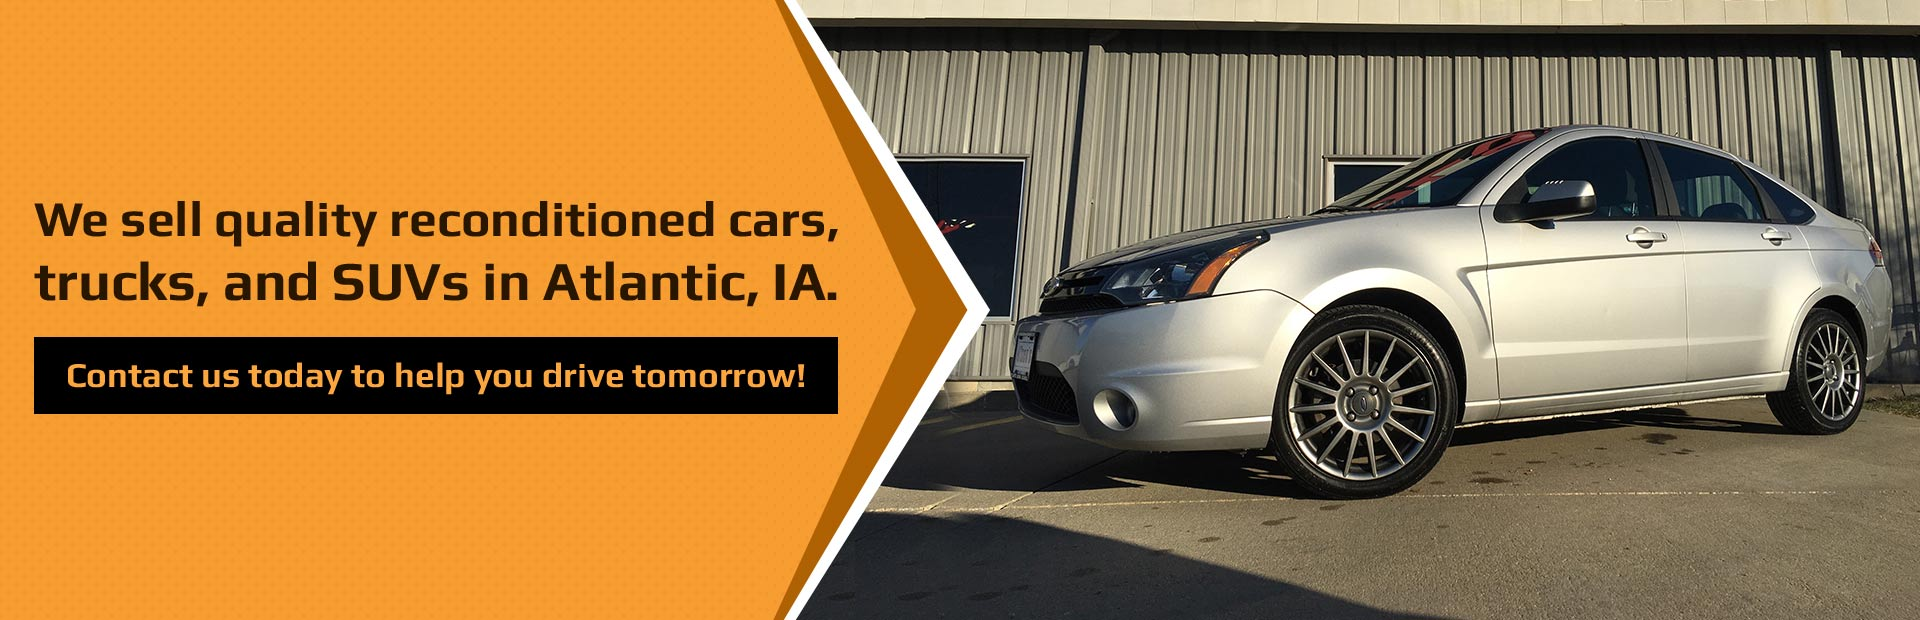 We sell quality reconditioned cars, trucks and SUVs in Atlantic, IA. Contact us today to help you drive tomorrow!